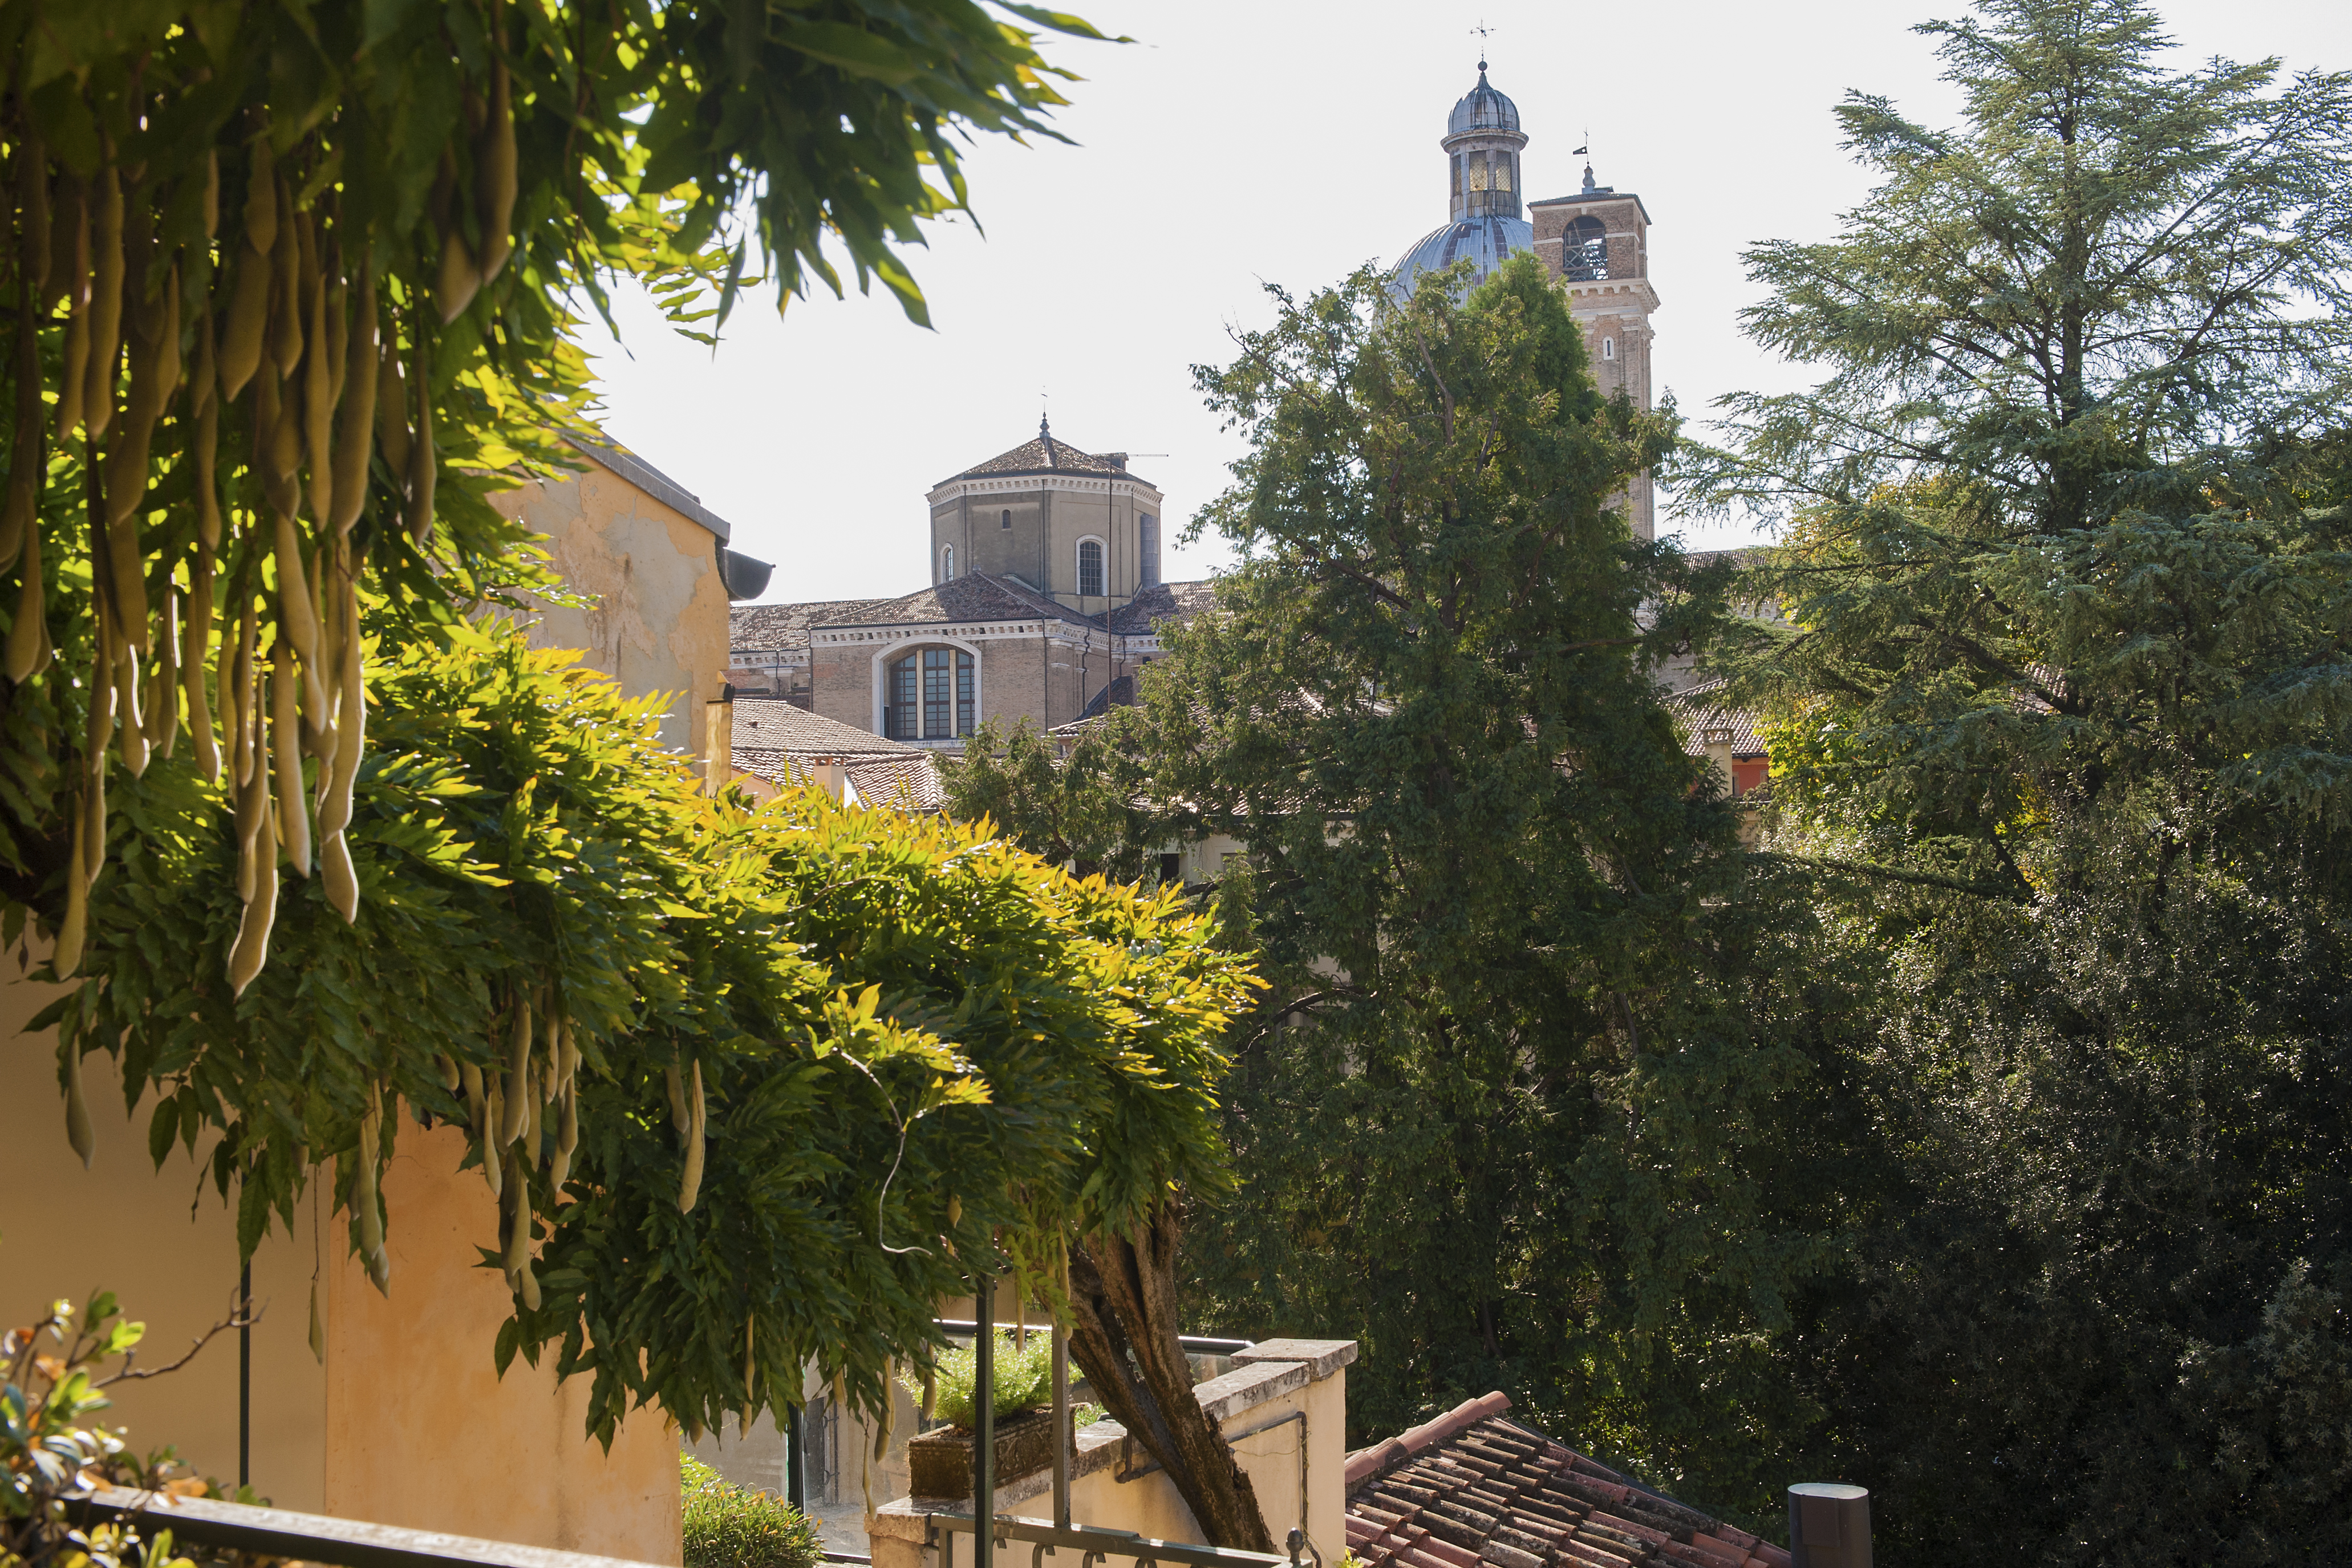 Private terrace view of secret garden, old trees and Duomo in Padova, Italy